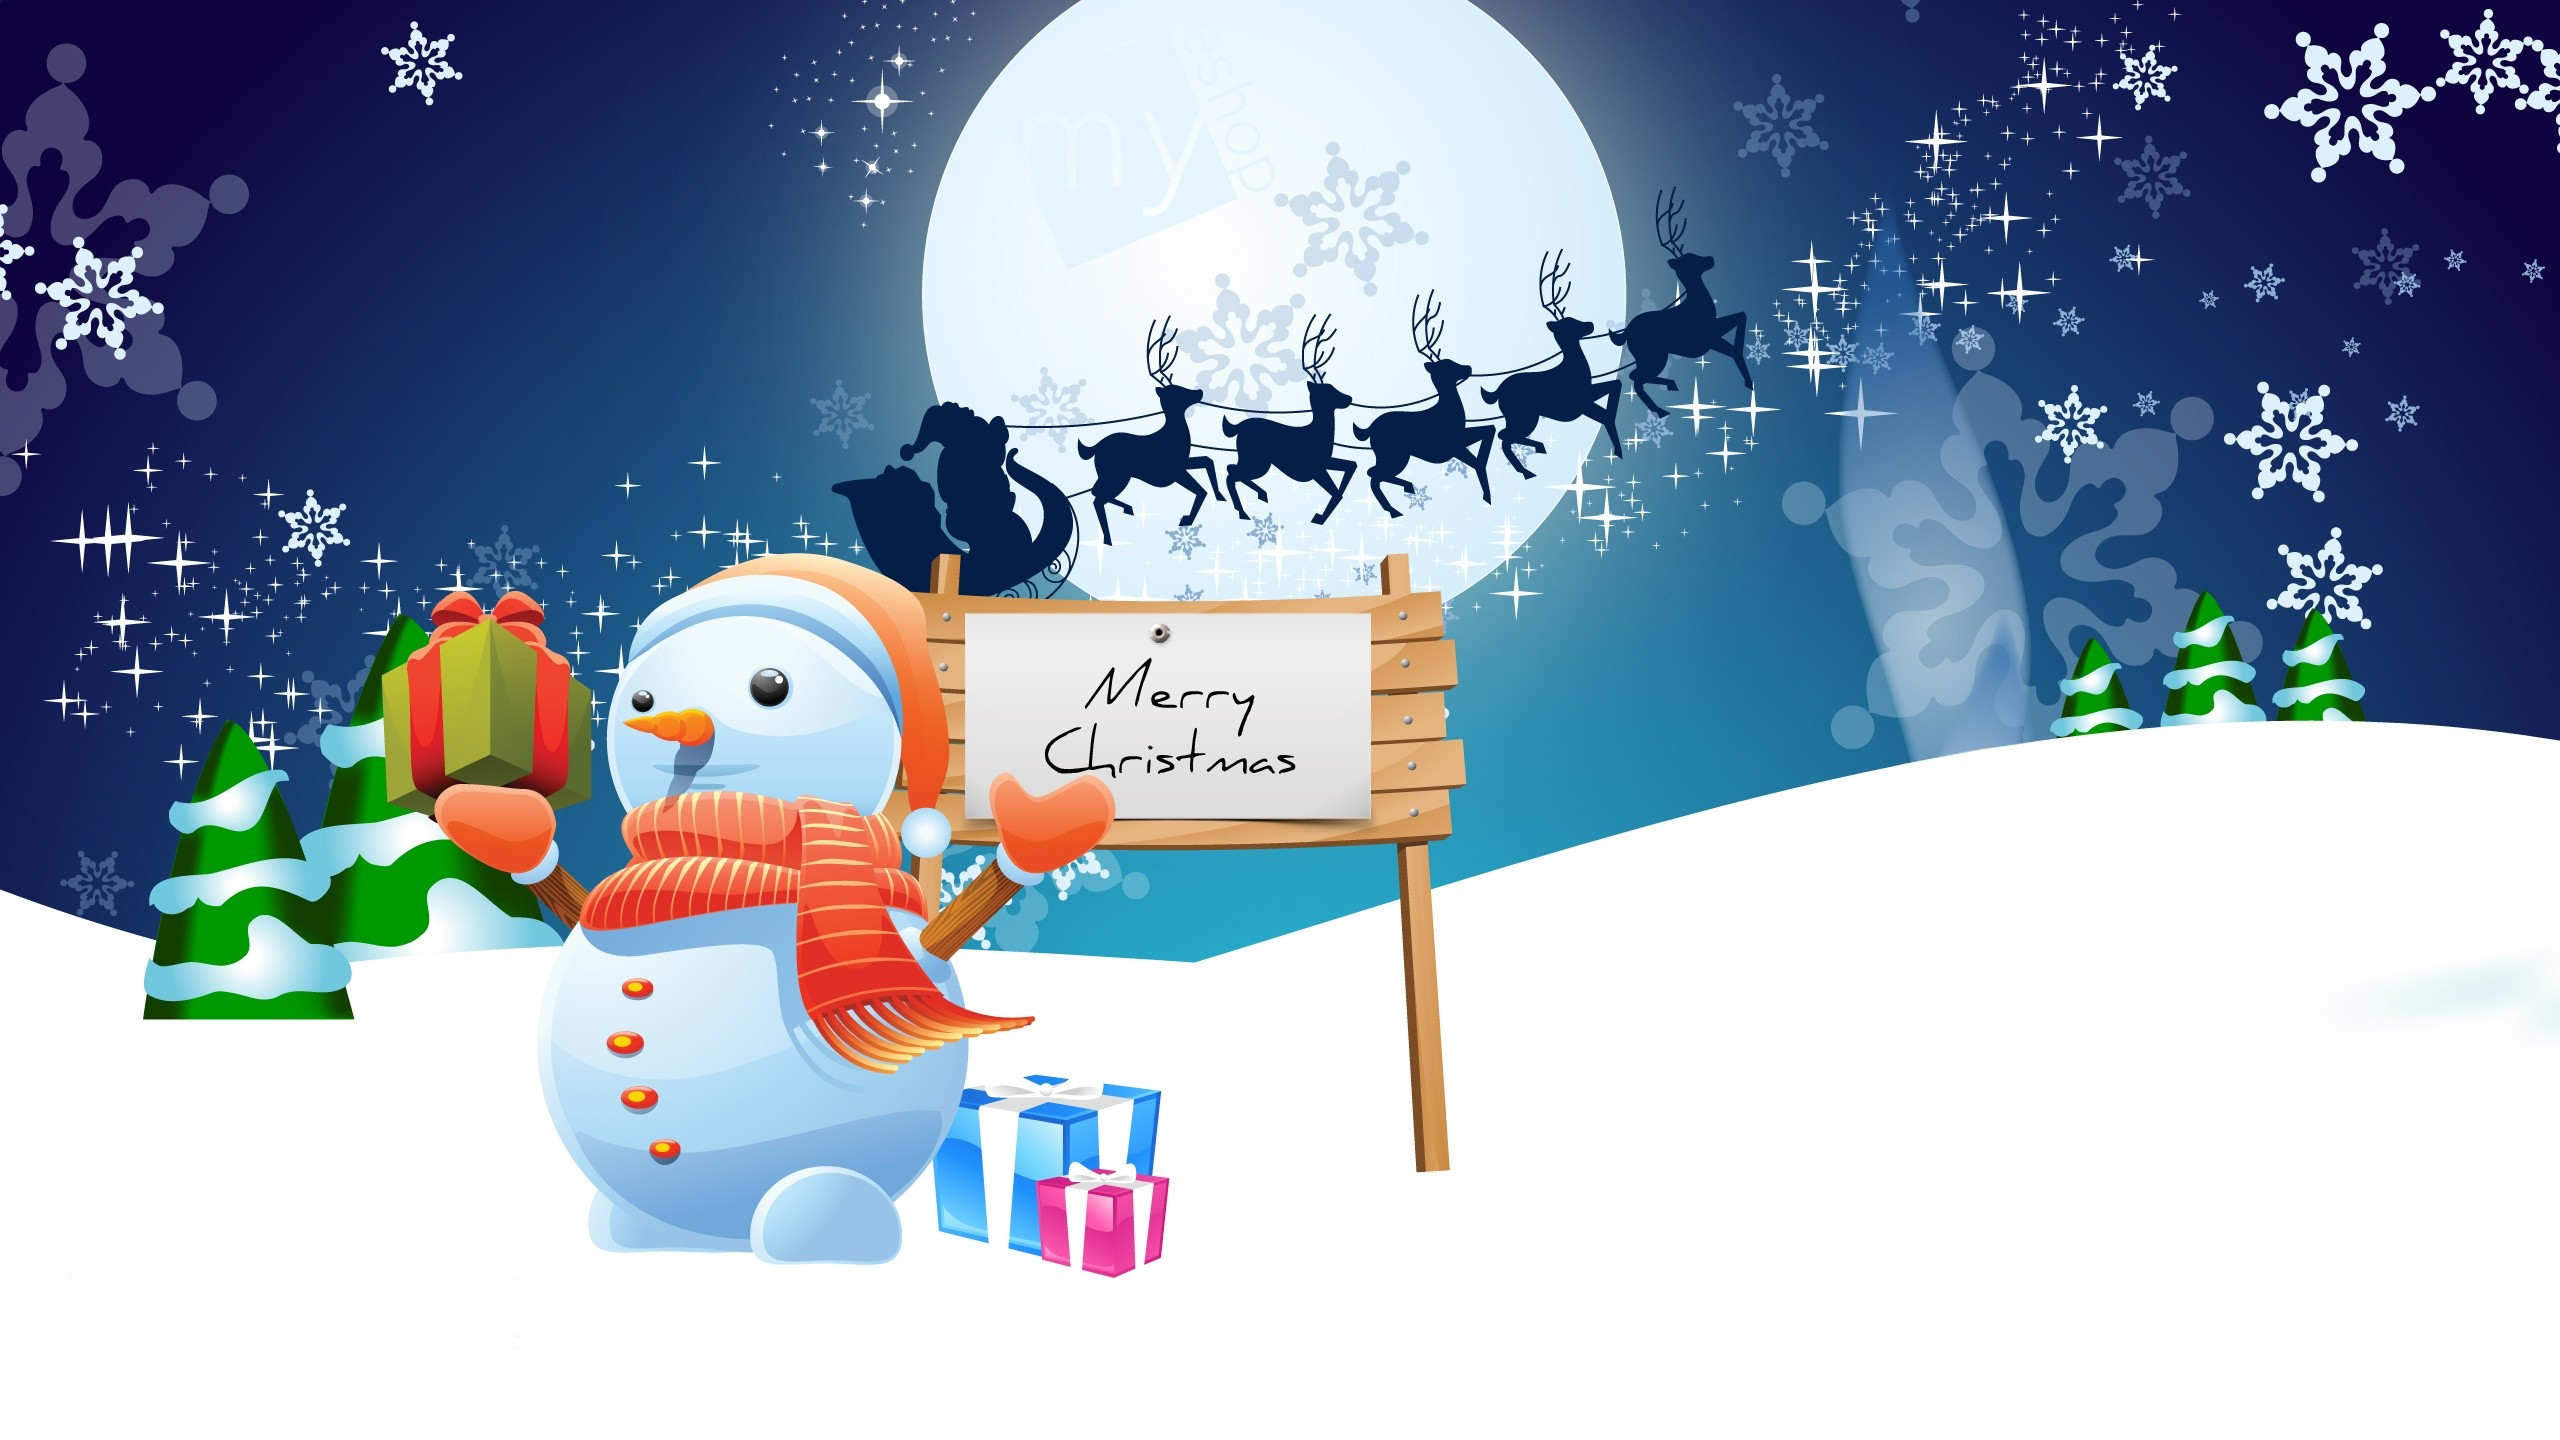 Res: 2560x1440, 40 Animated Christmas Wallpapers For 2015